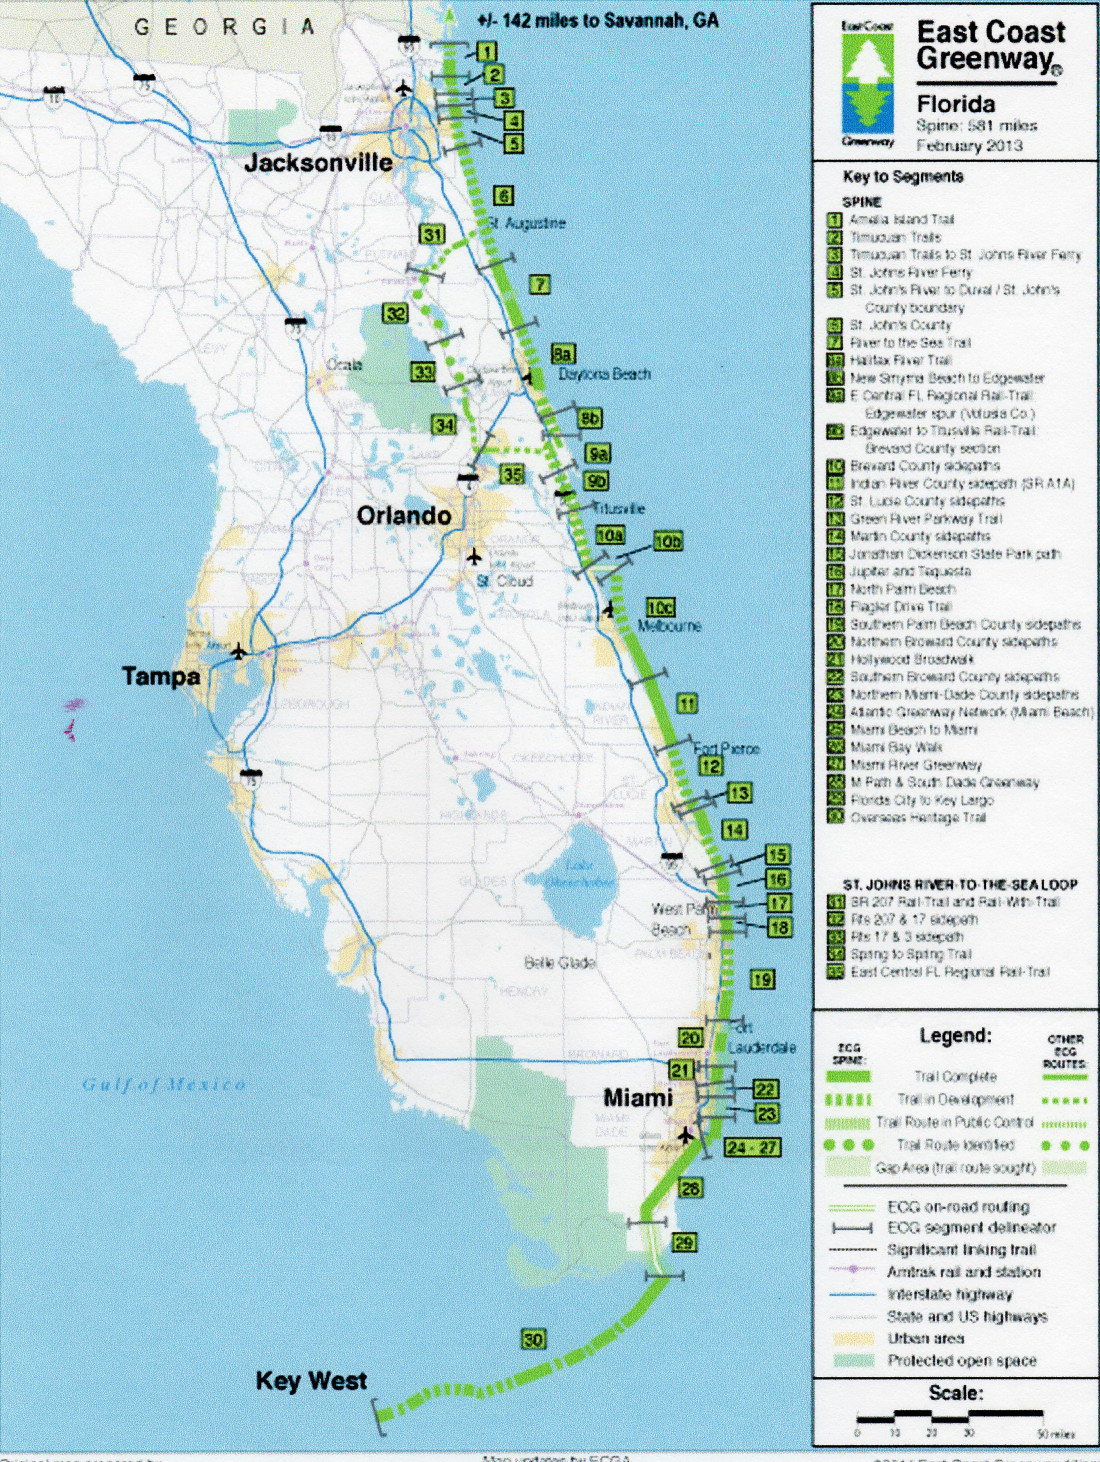 Insert 1. East Coast Greenway.Florida